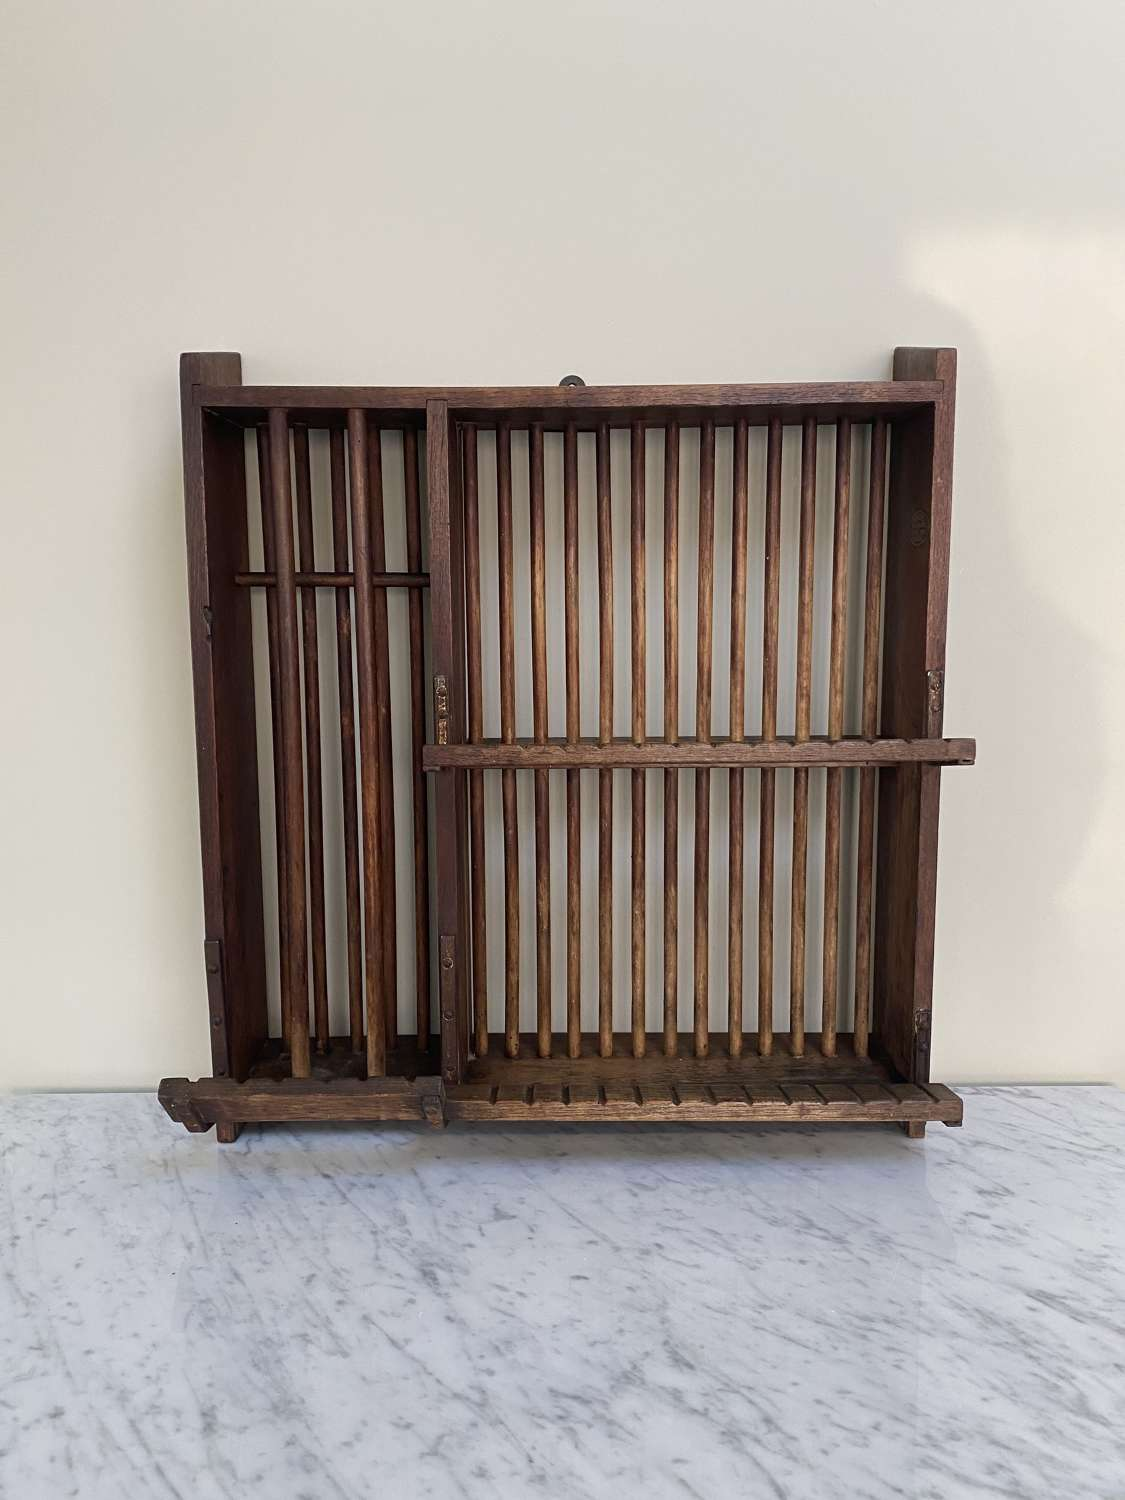 Early 20thC Staines Wall Hung Plate Rack